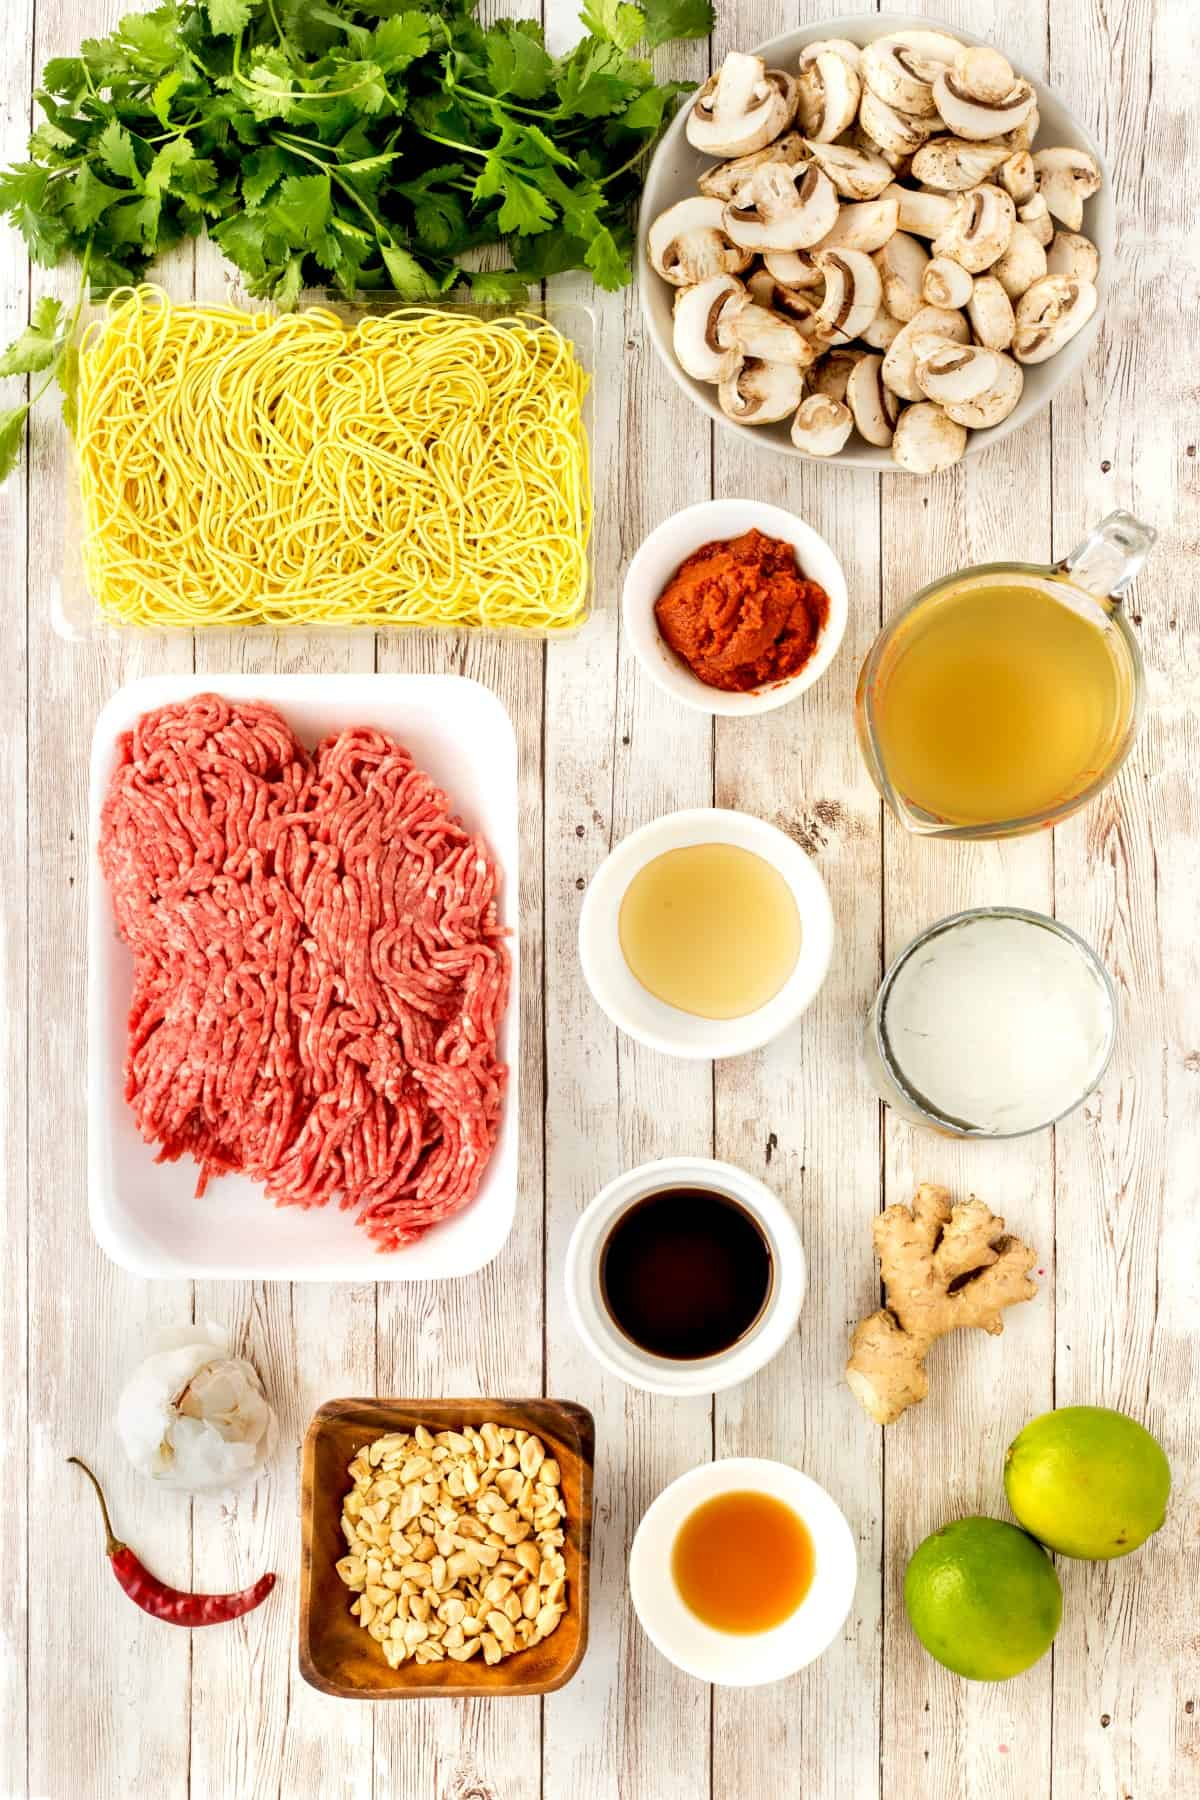 Ingredients for 30 Minute Beef Coconut Curry Soup